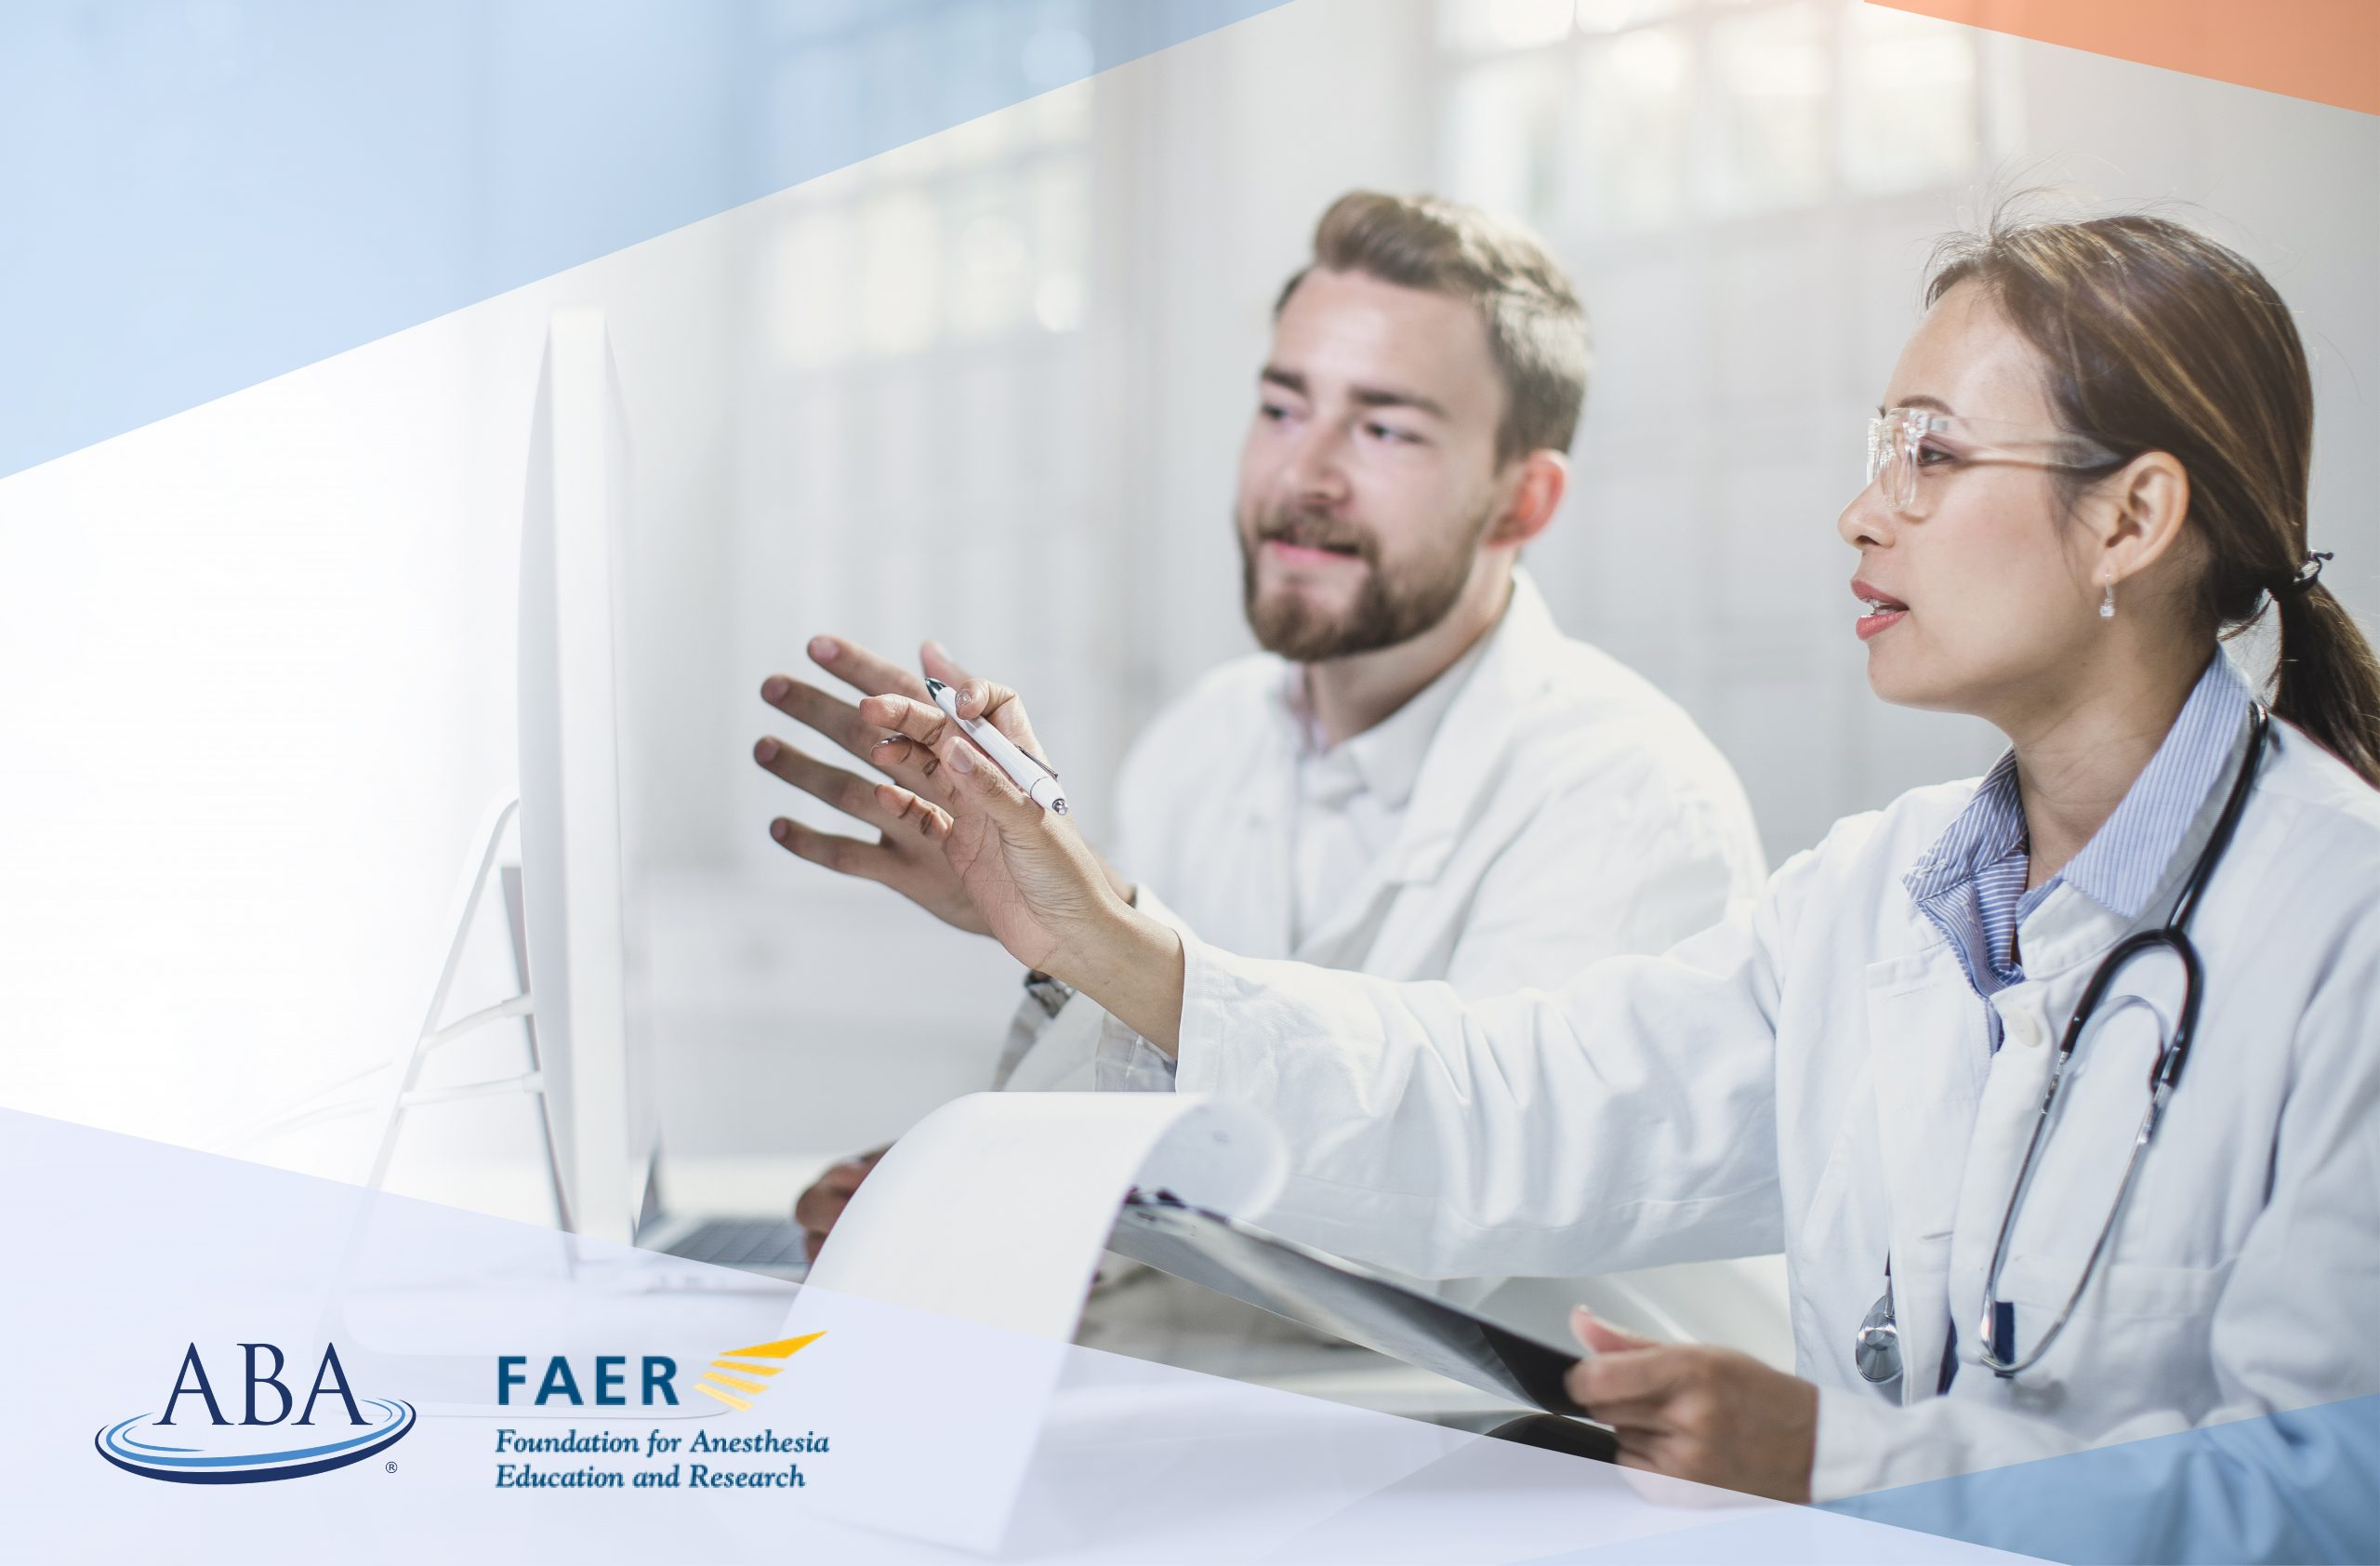 FAER/ABA Research in Education Grant